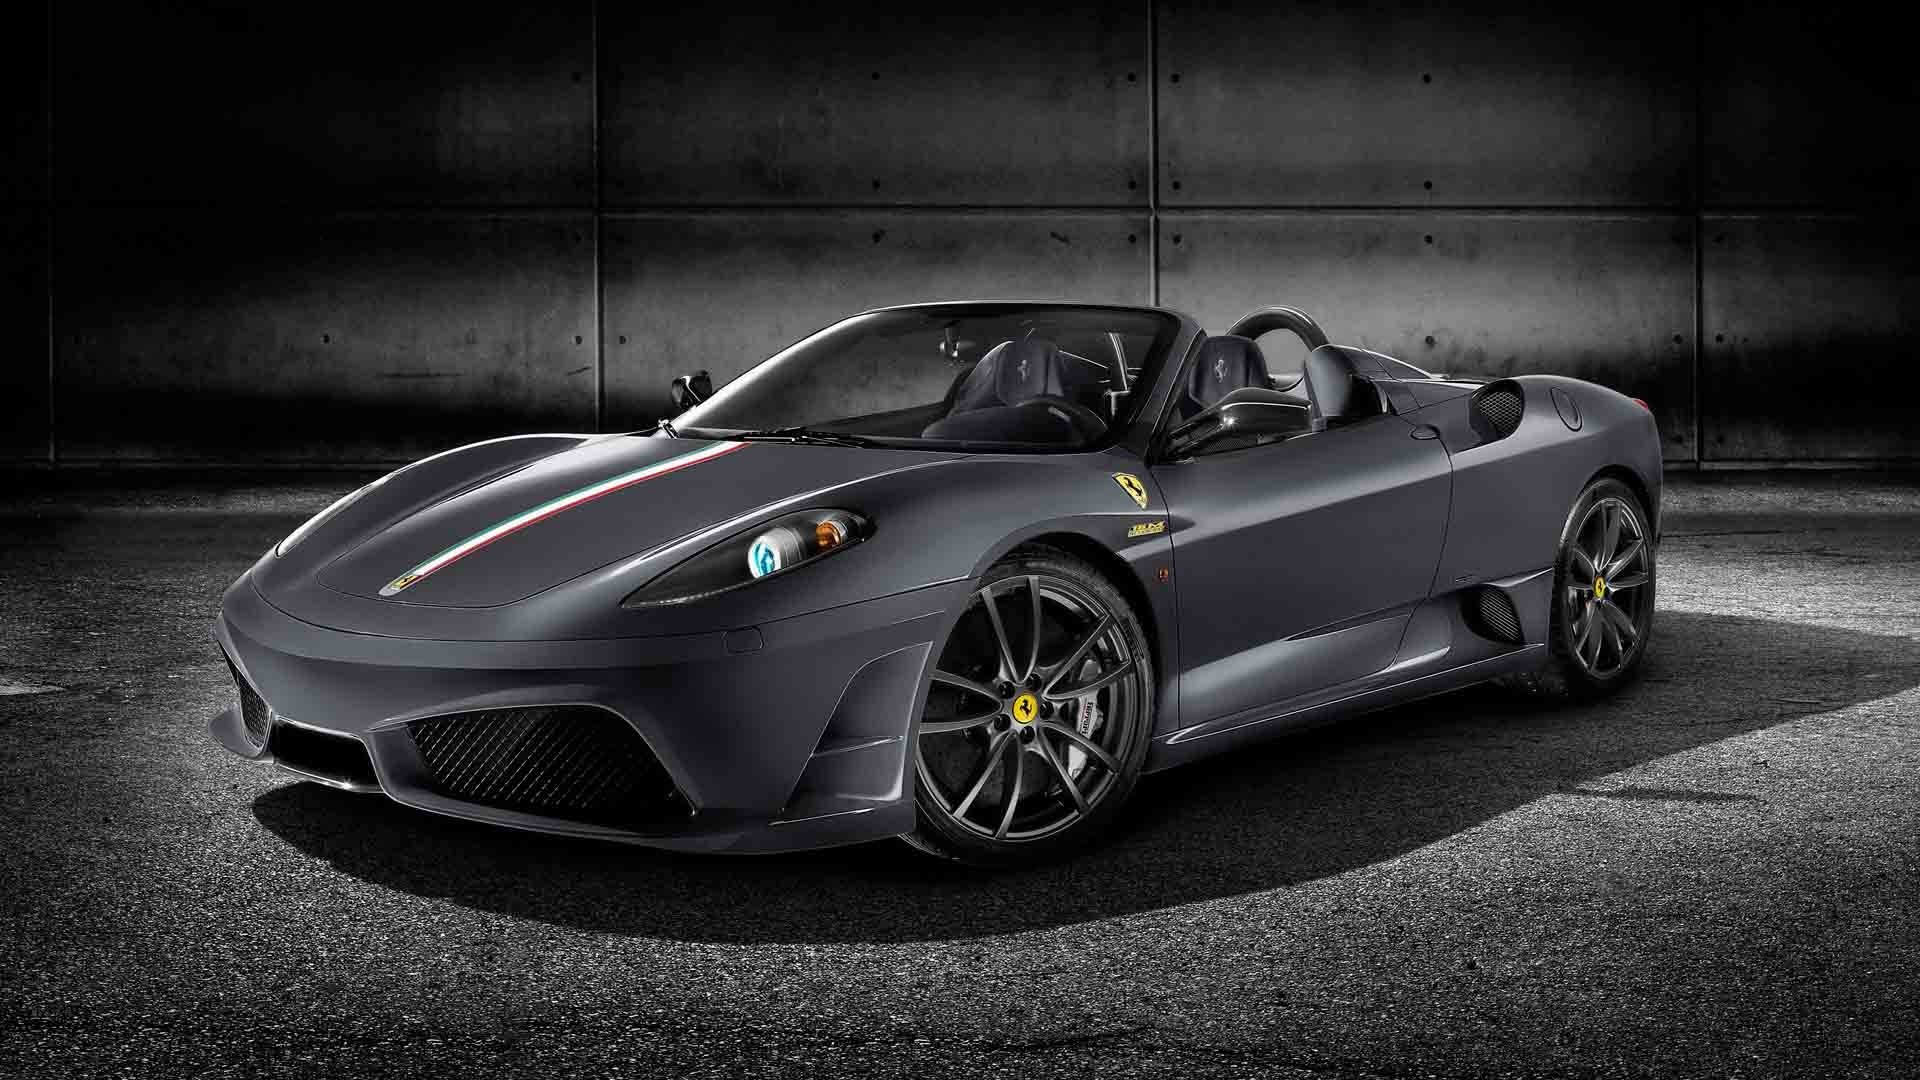 Res: 1920x1080, Best Collection Of Ferrari Exotic Car Wallpapers Lowrider Car Pictures